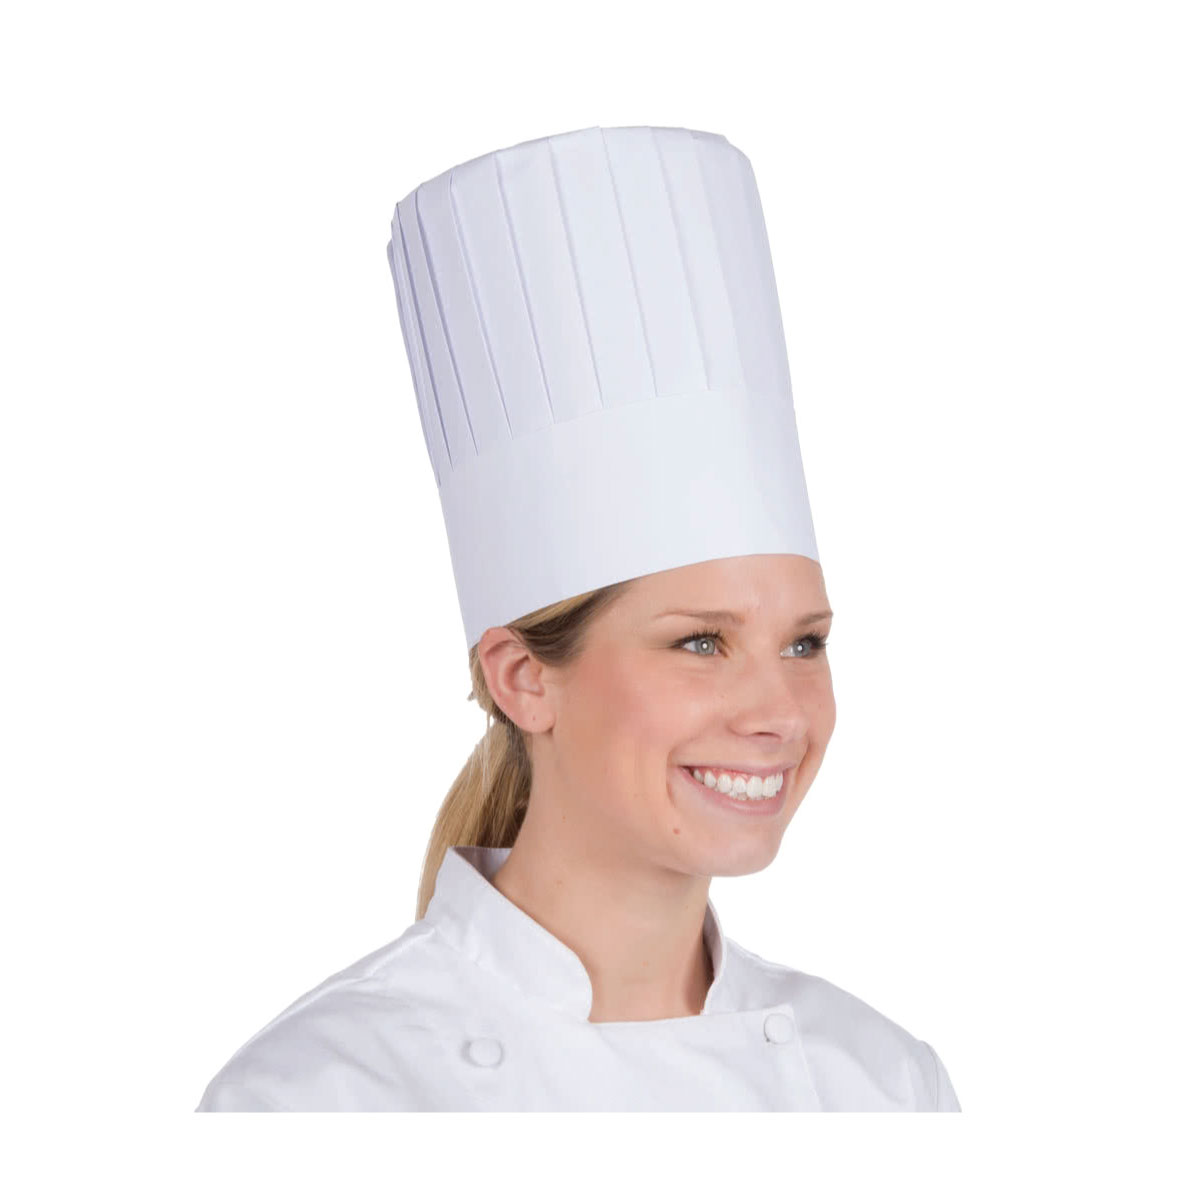 kitchen hats led ceiling lighting gygi linens accents 9 10 flat paper chef hat